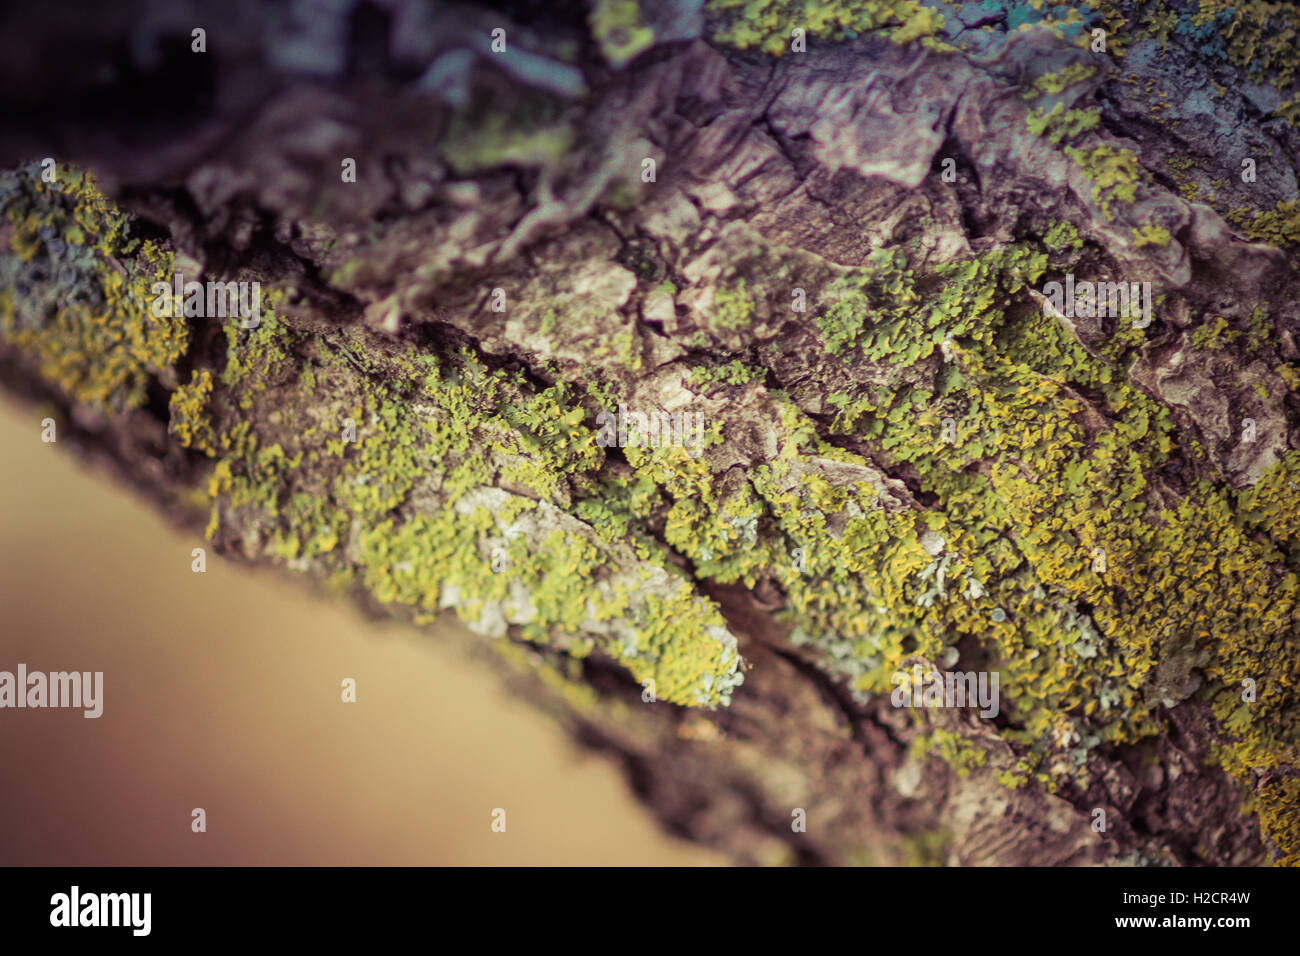 Moss on Tree Trunk - Stock Image